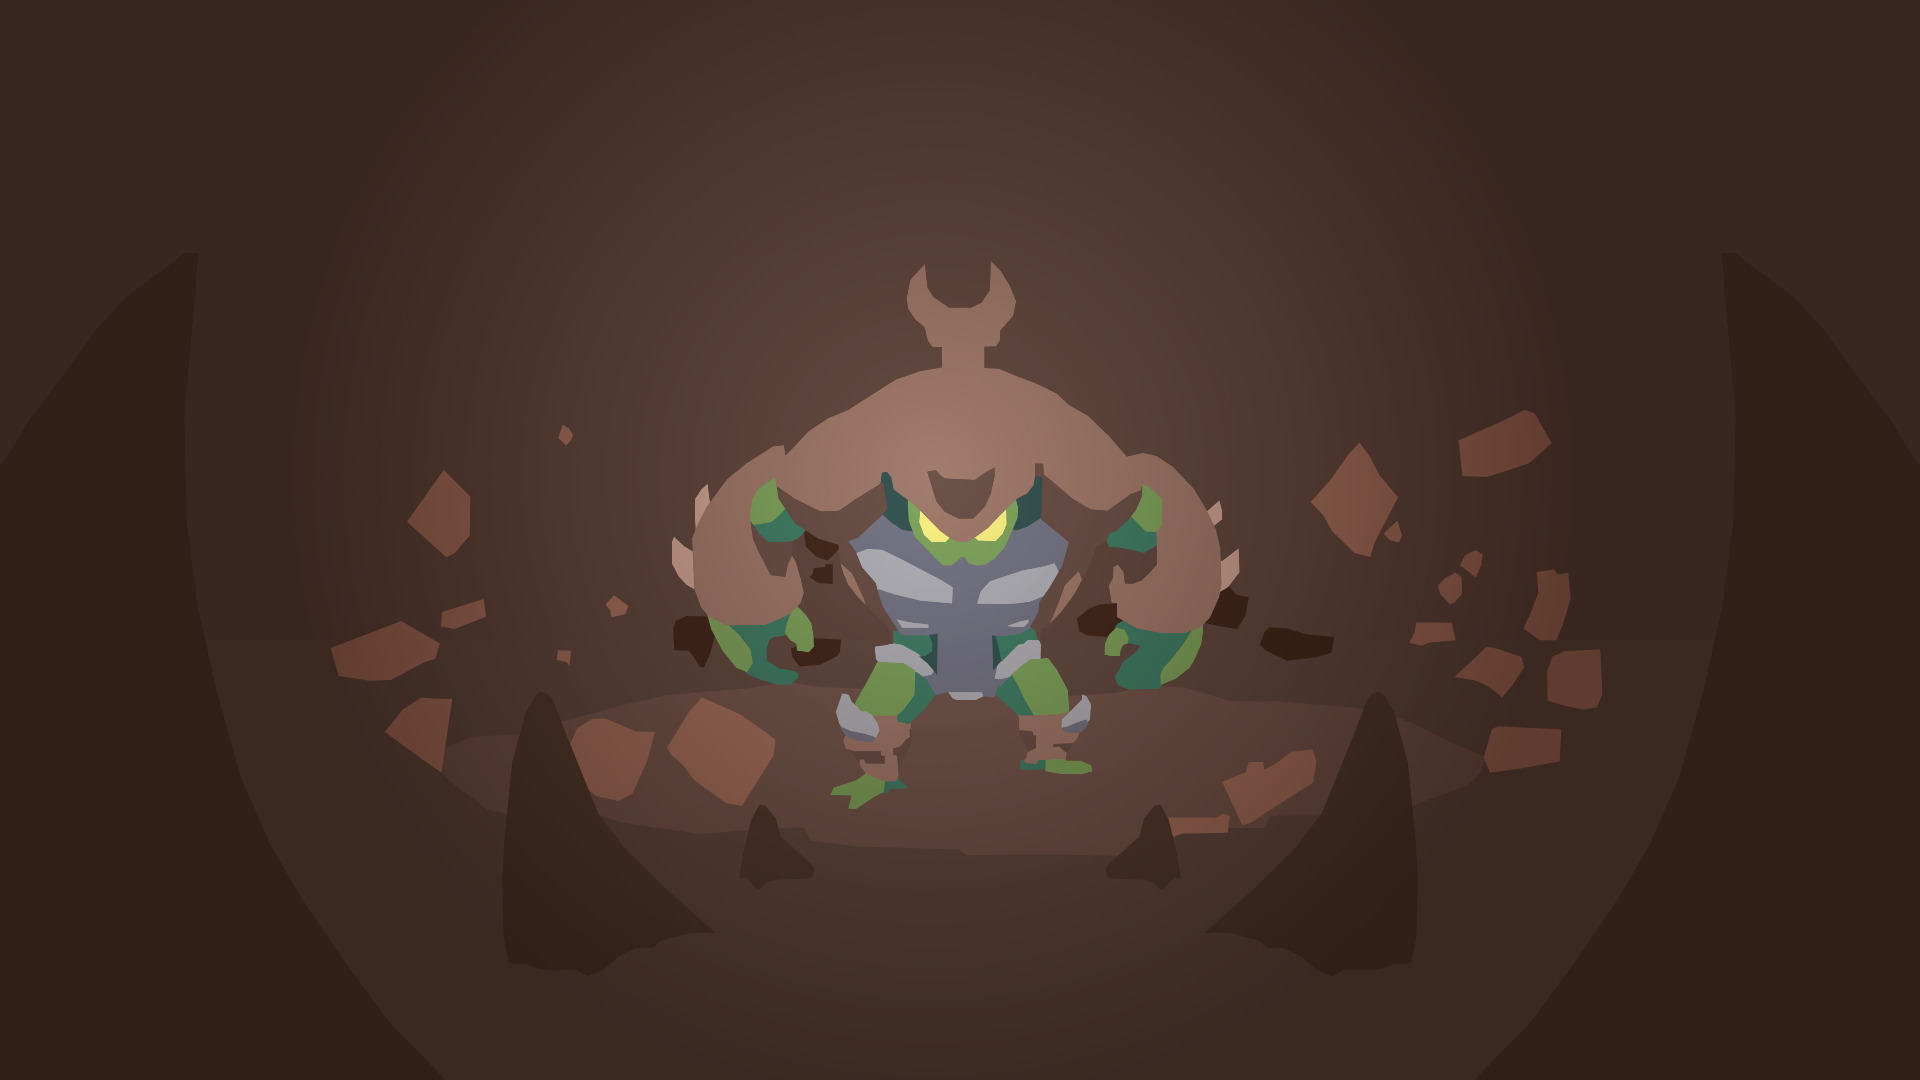 Rivals Of Aether Kragg Minimalist Hd Wallpaper Background Image